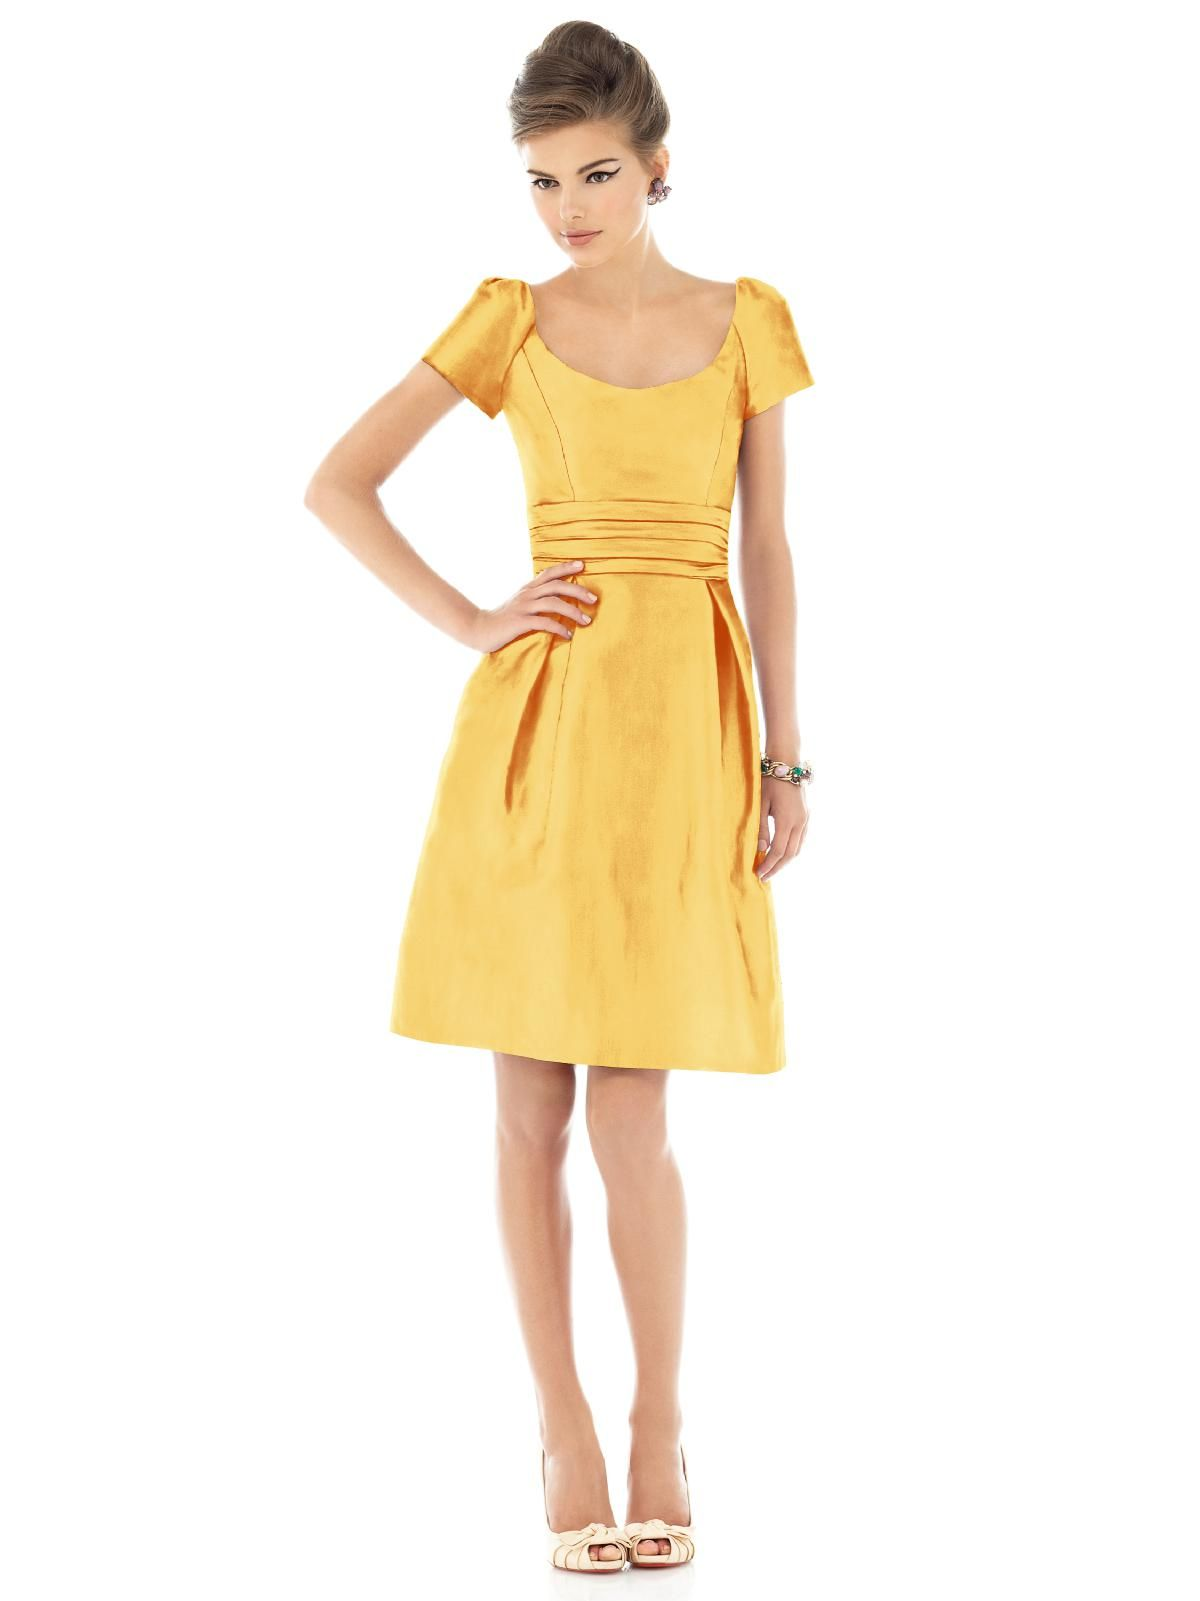 Mango colored bridesmaid dresses choice image braidsmaid dress alfred sung style d526 mango color dress pinterest alfred alfred sung style d526 mango alfred sung ombrellifo Image collections